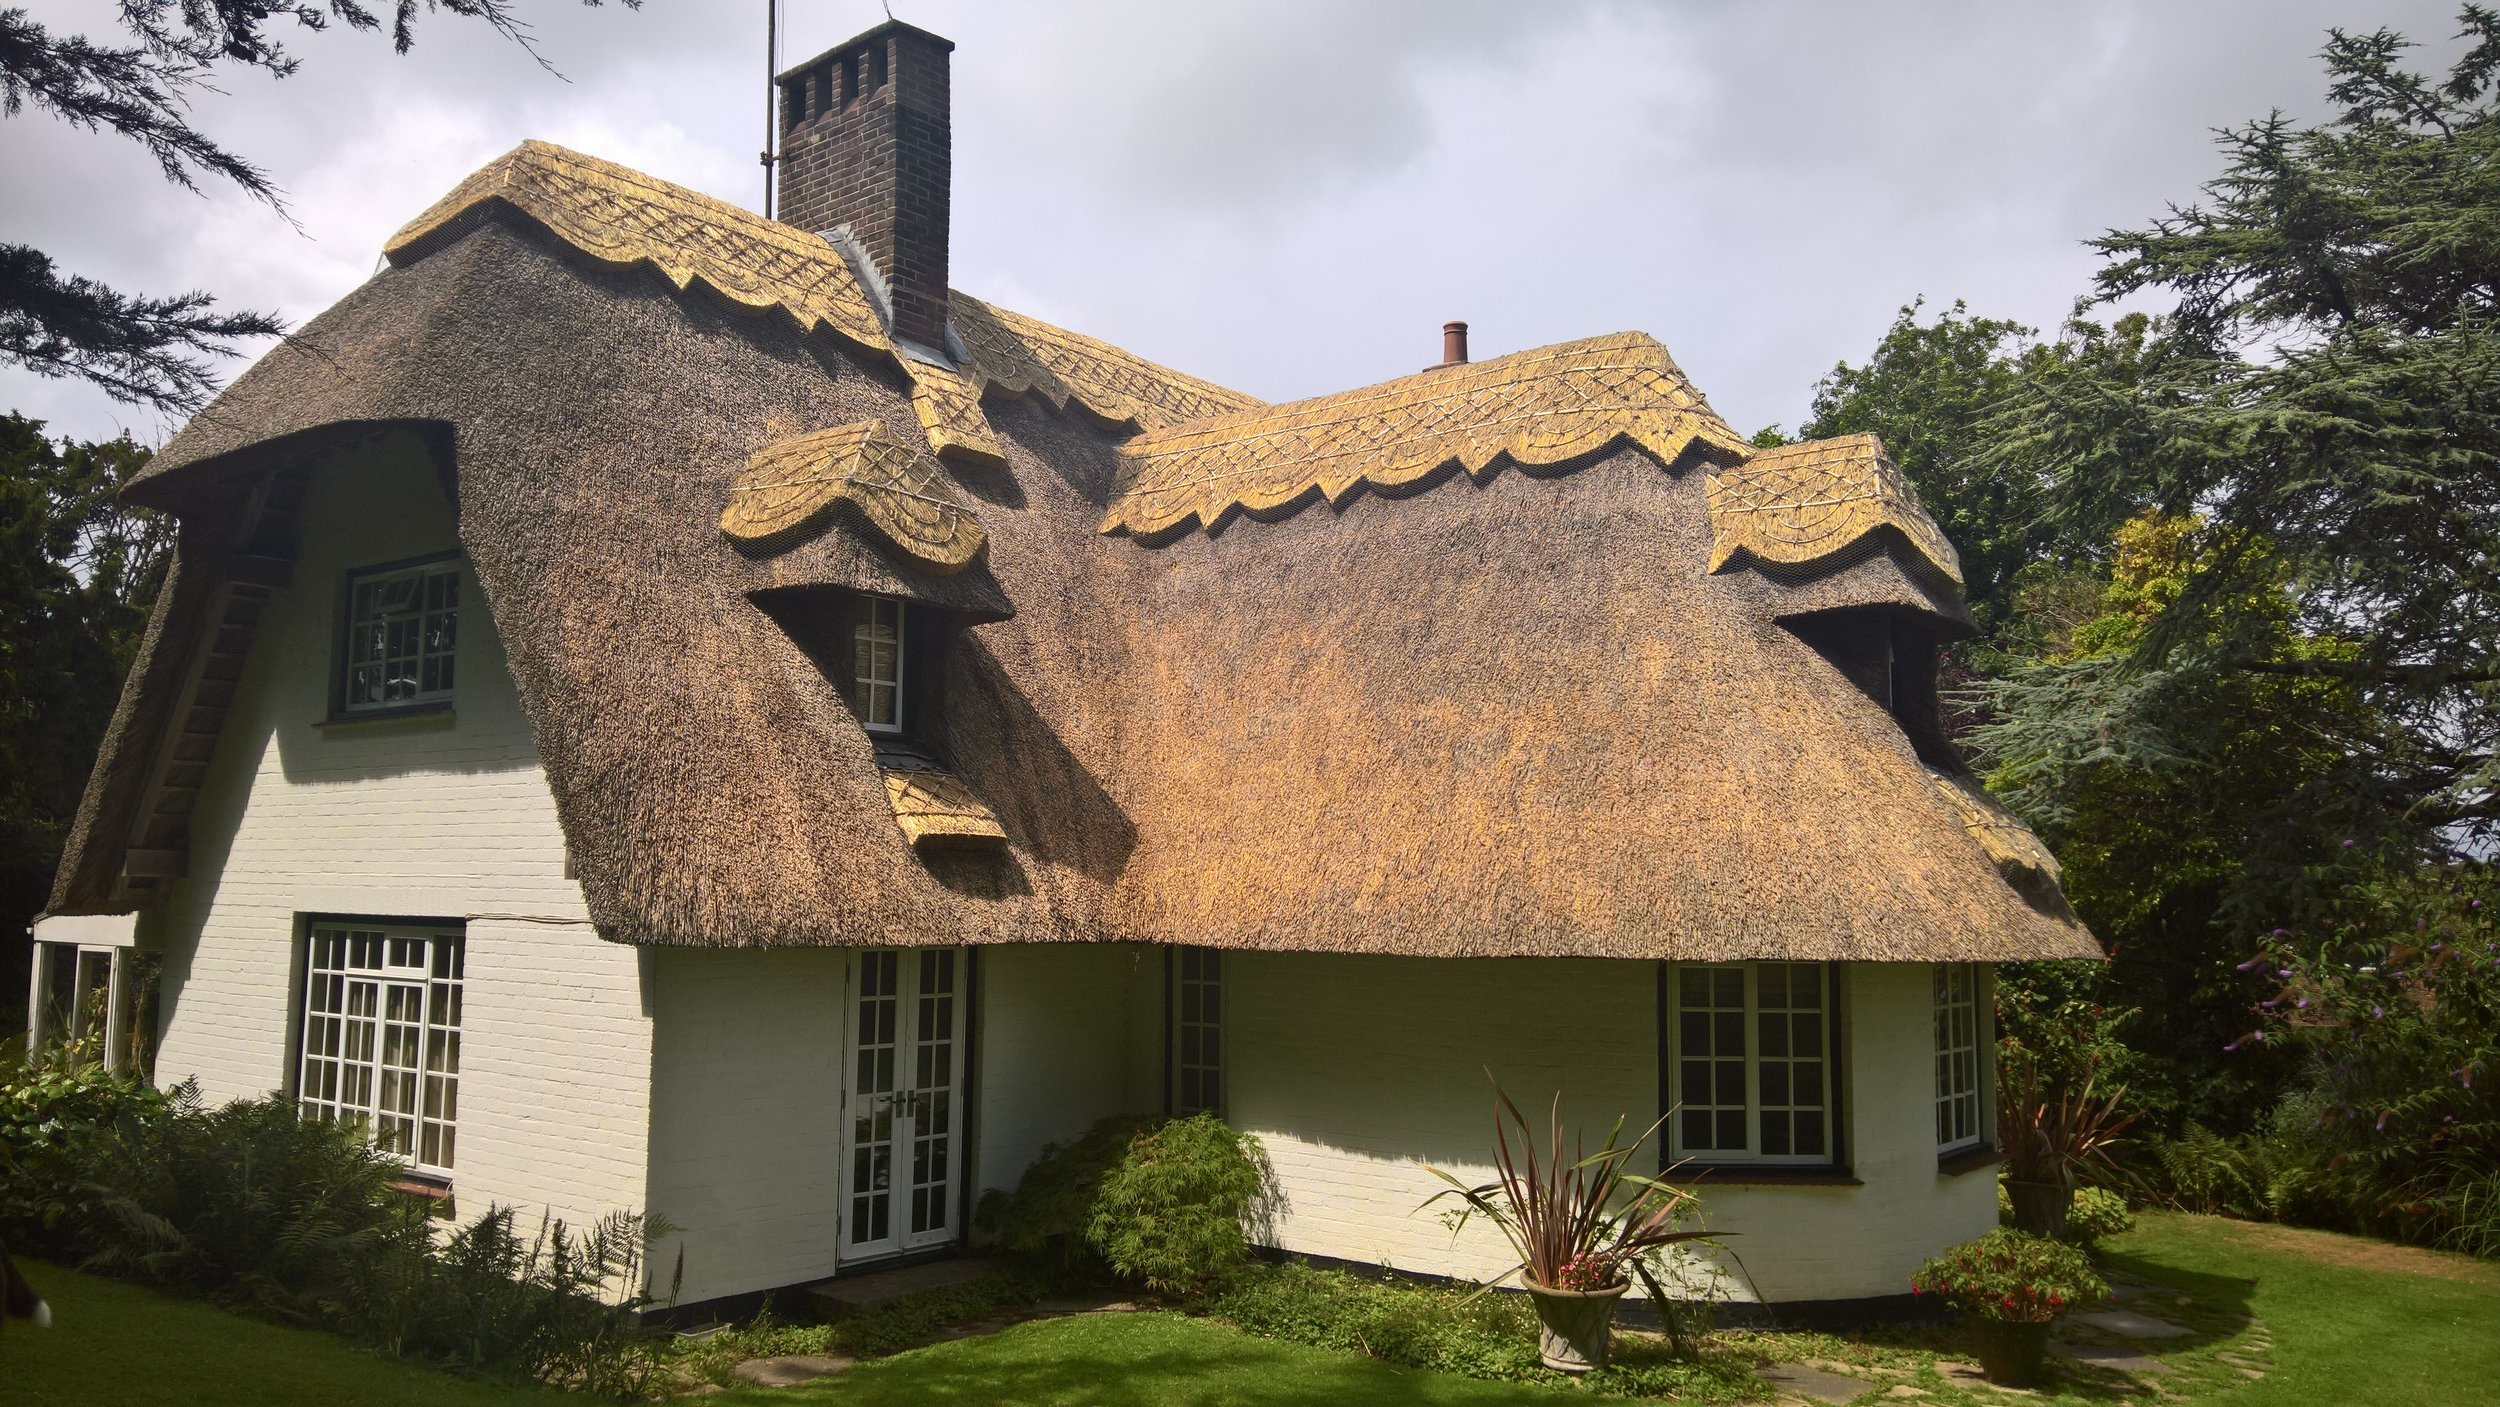 East sussex thatched cottage